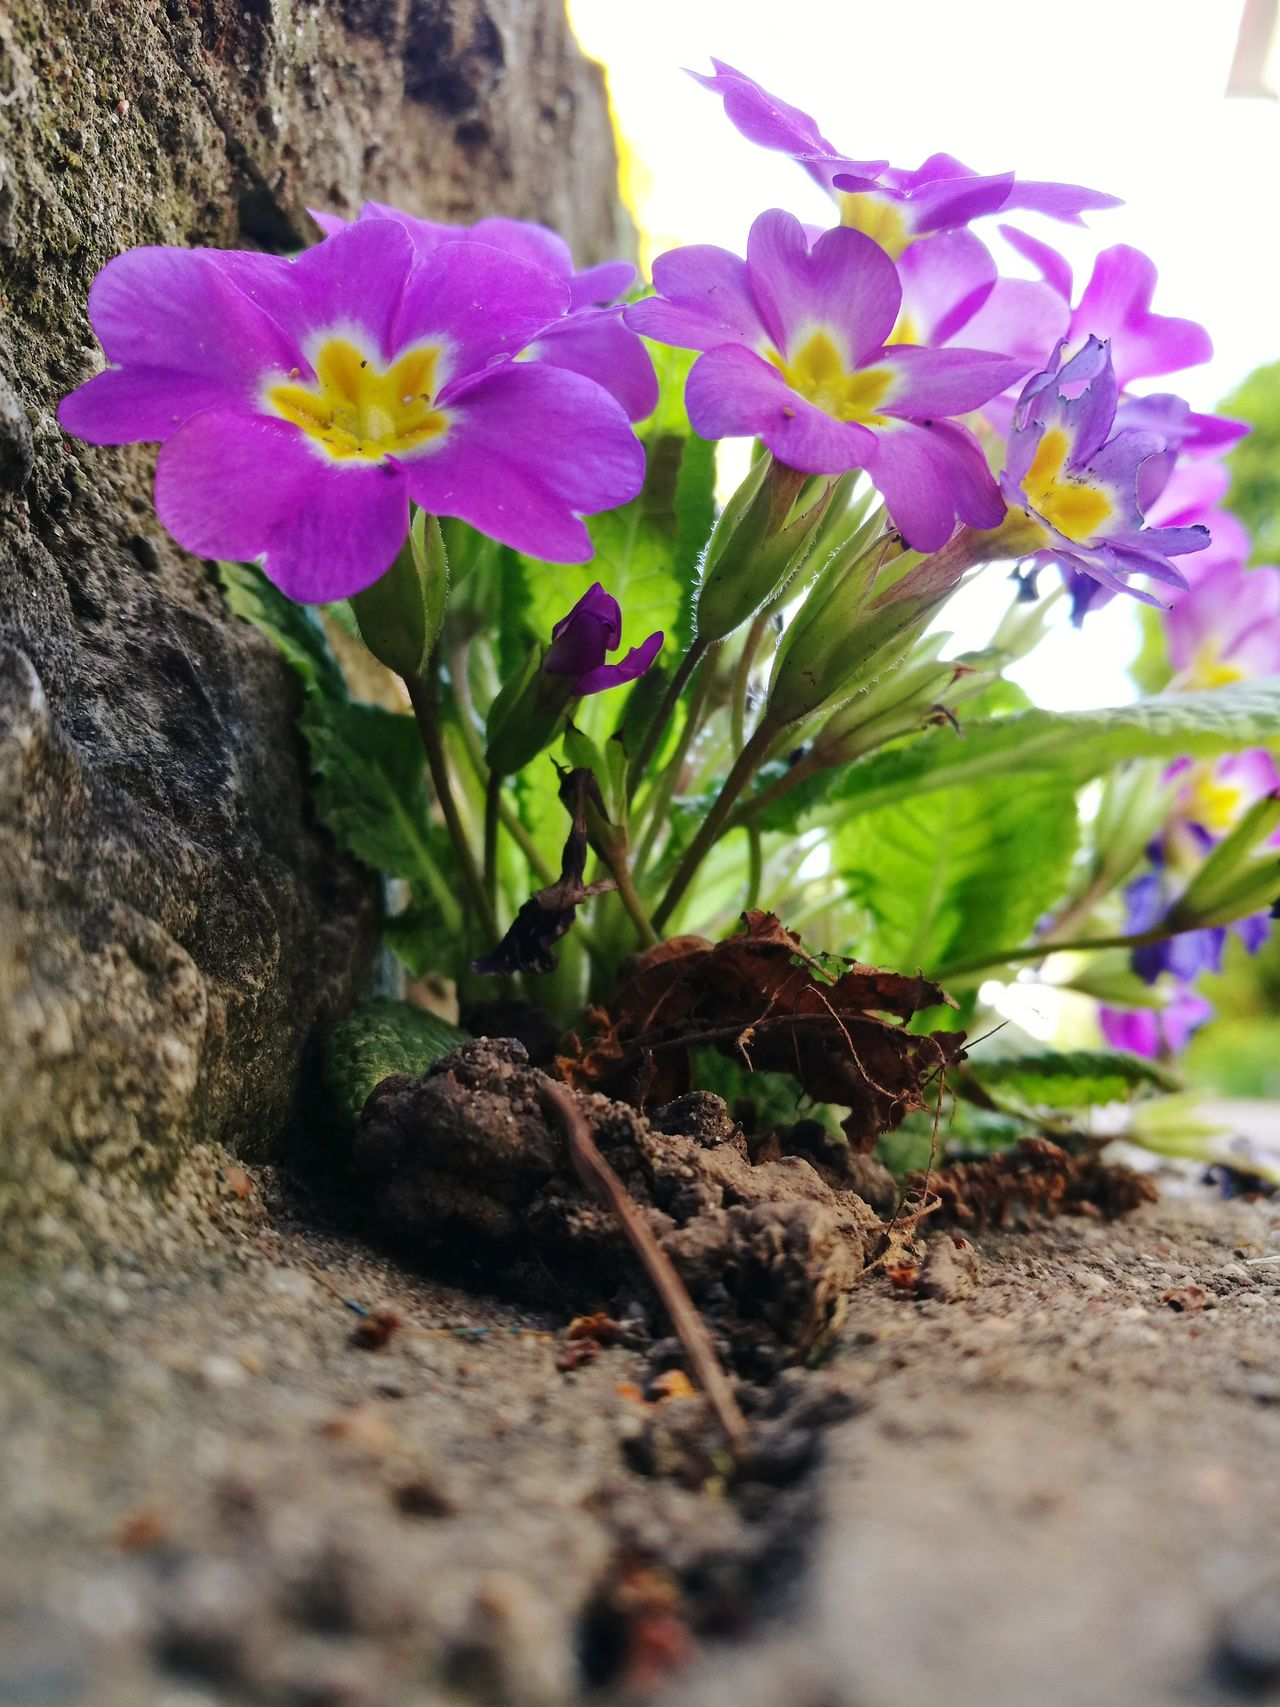 Primroses Flower Nature Growth Plant Purple Beauty In Nature Freshness PetalFragility Green Color Close-up No People Day Flower Head Outdoors Primrose Flower Wall Gardening Colorfull Flower Primeln Frühlingserwachen Farbenfroh Millennial Pink